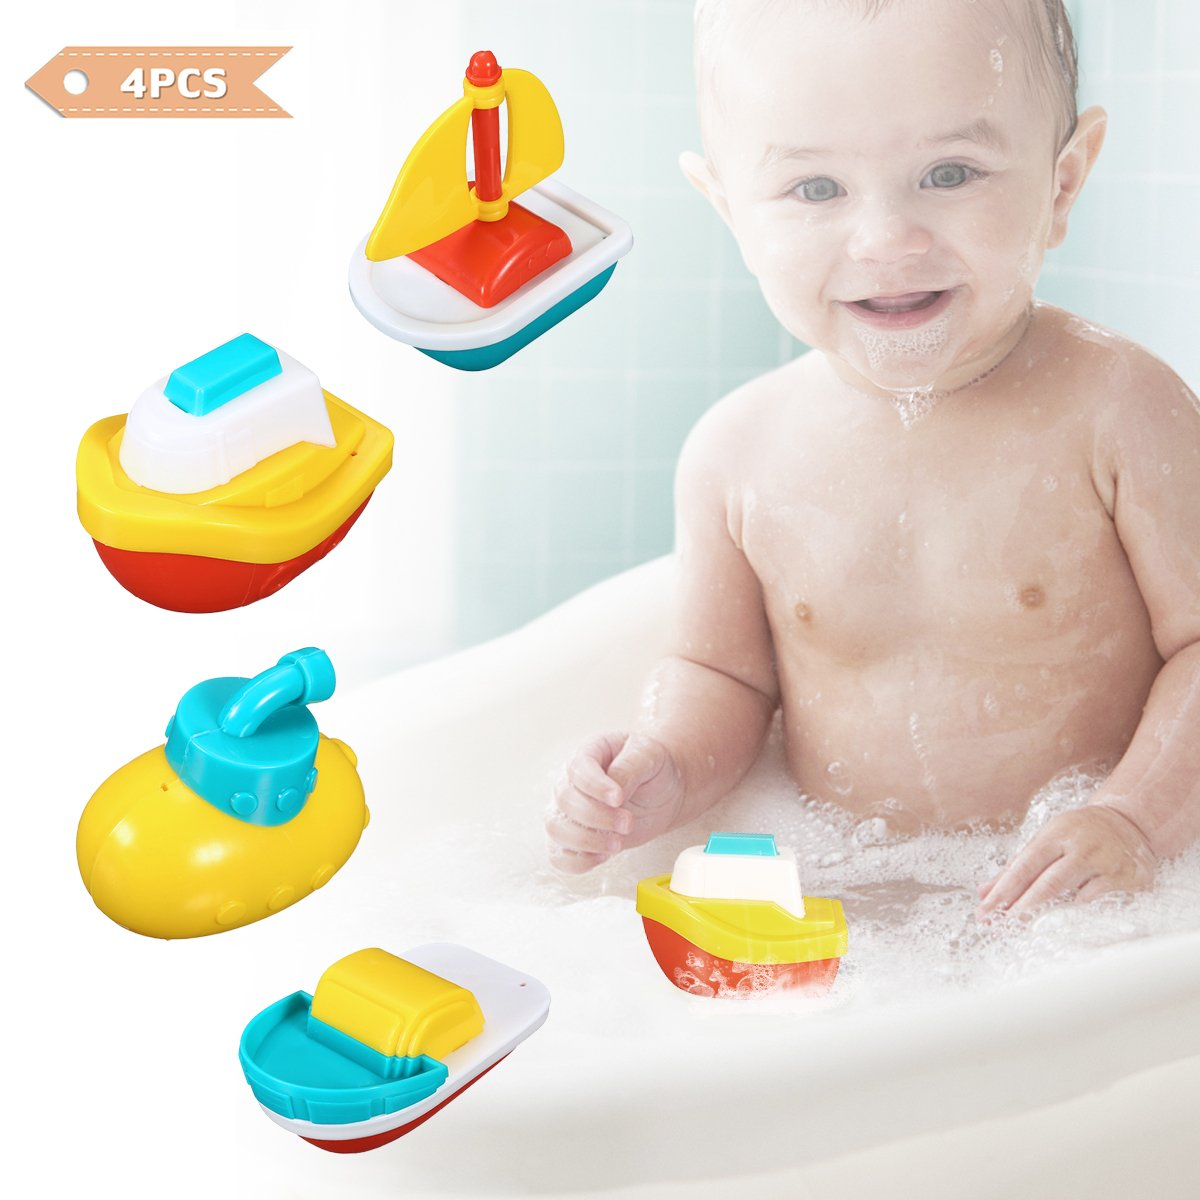 FUNTOK Baby Bath Shower Toys, Cartoon Bath Spray Toys Spray Station Bathtub Toy Water Sprinkler Toddler Youy